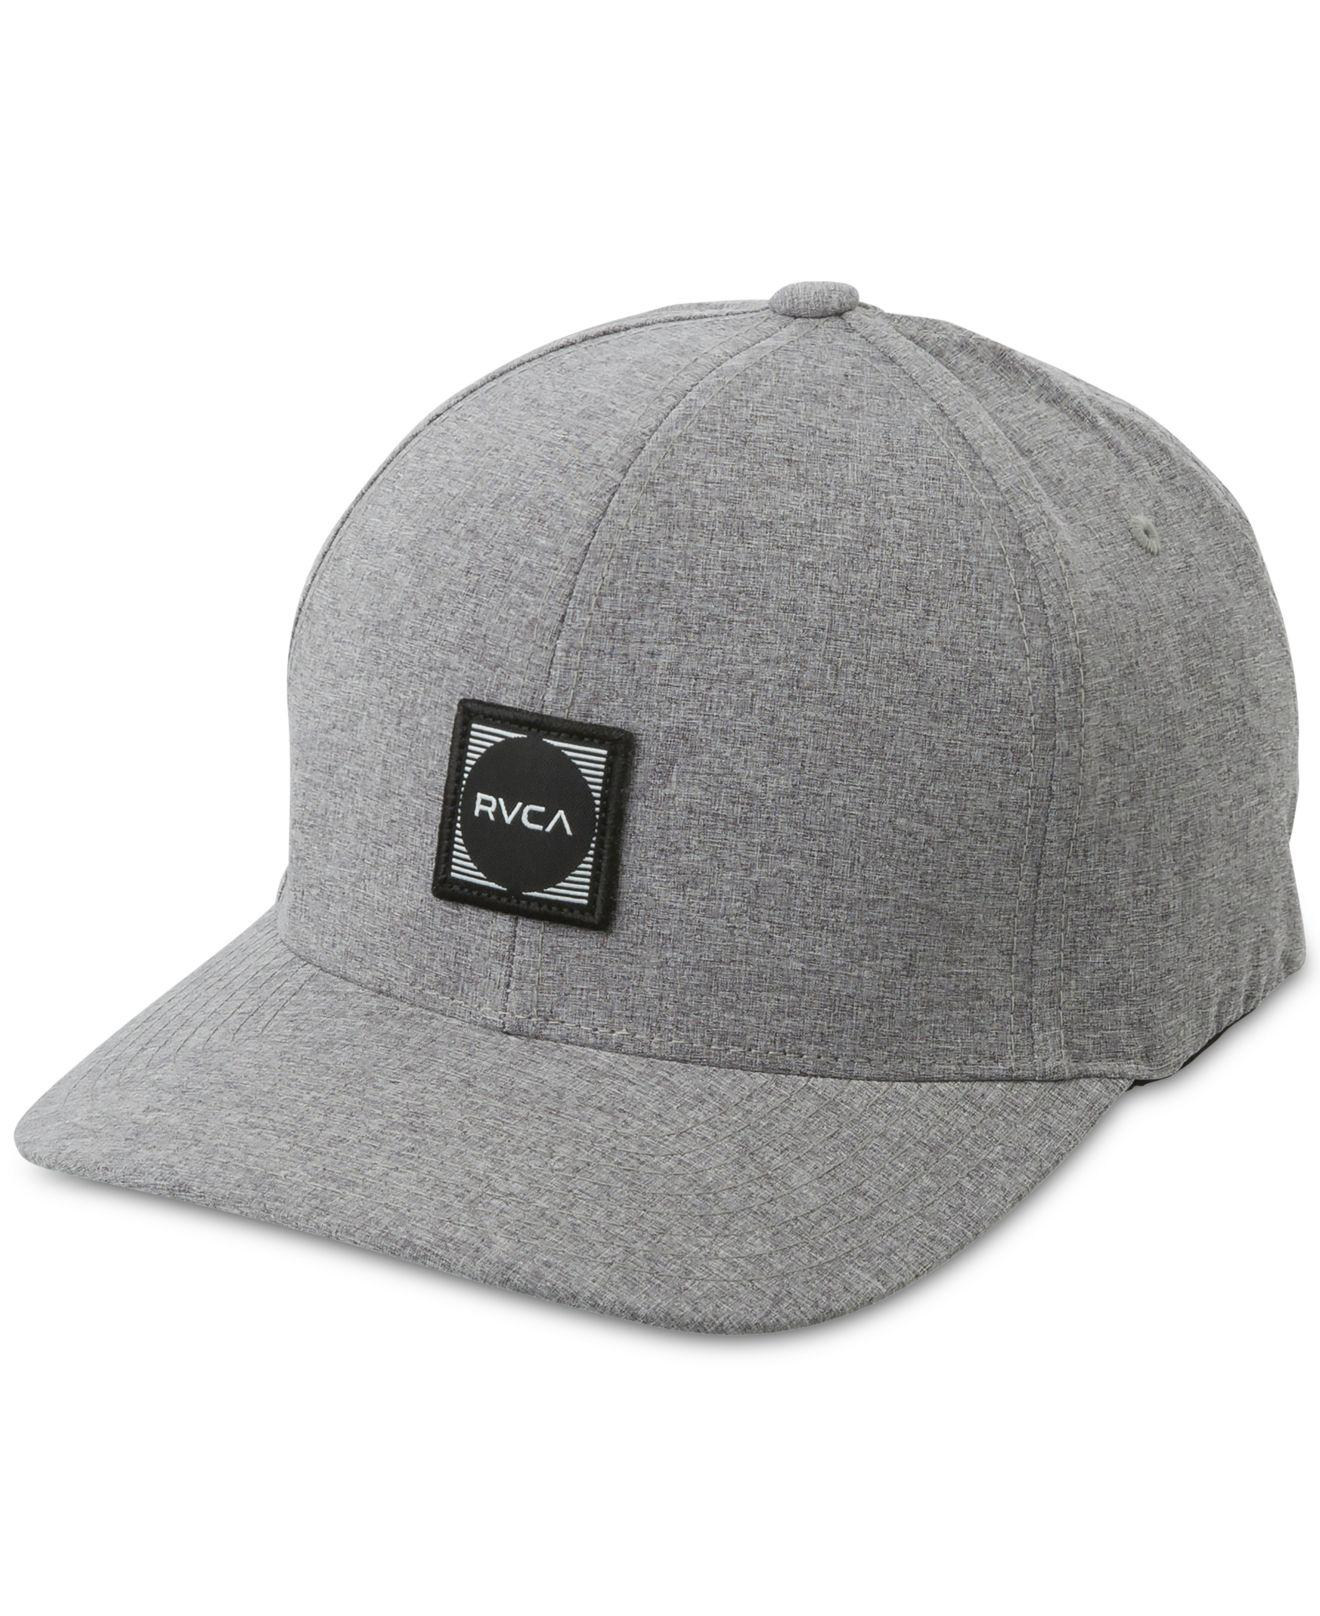 2fb61a32f Lyst - RVCA Flex-fit Scores Hat in Gray for Men